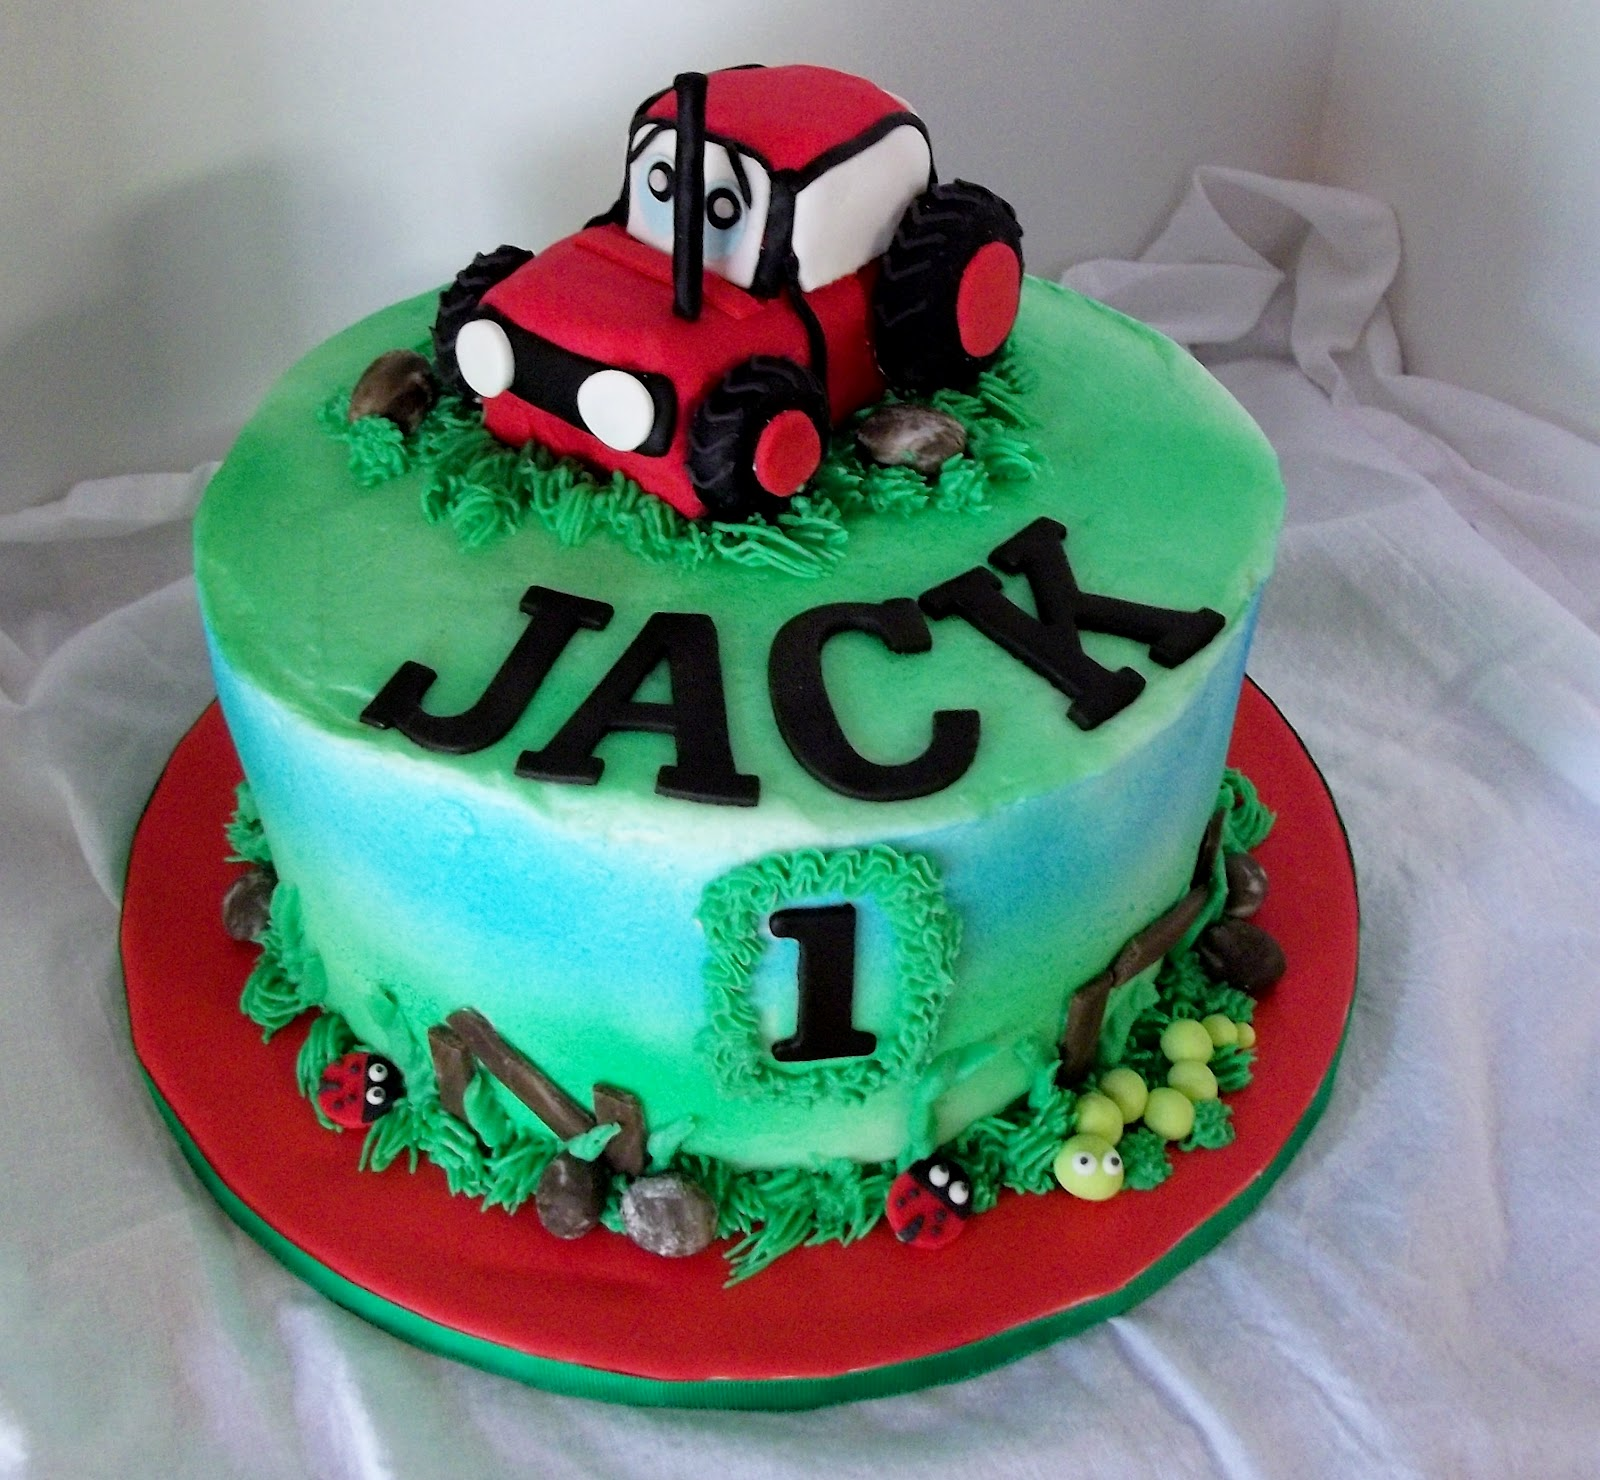 Cake Photos Of Birthday : Tractor Cakes   Decoration Ideas Little Birthday Cakes